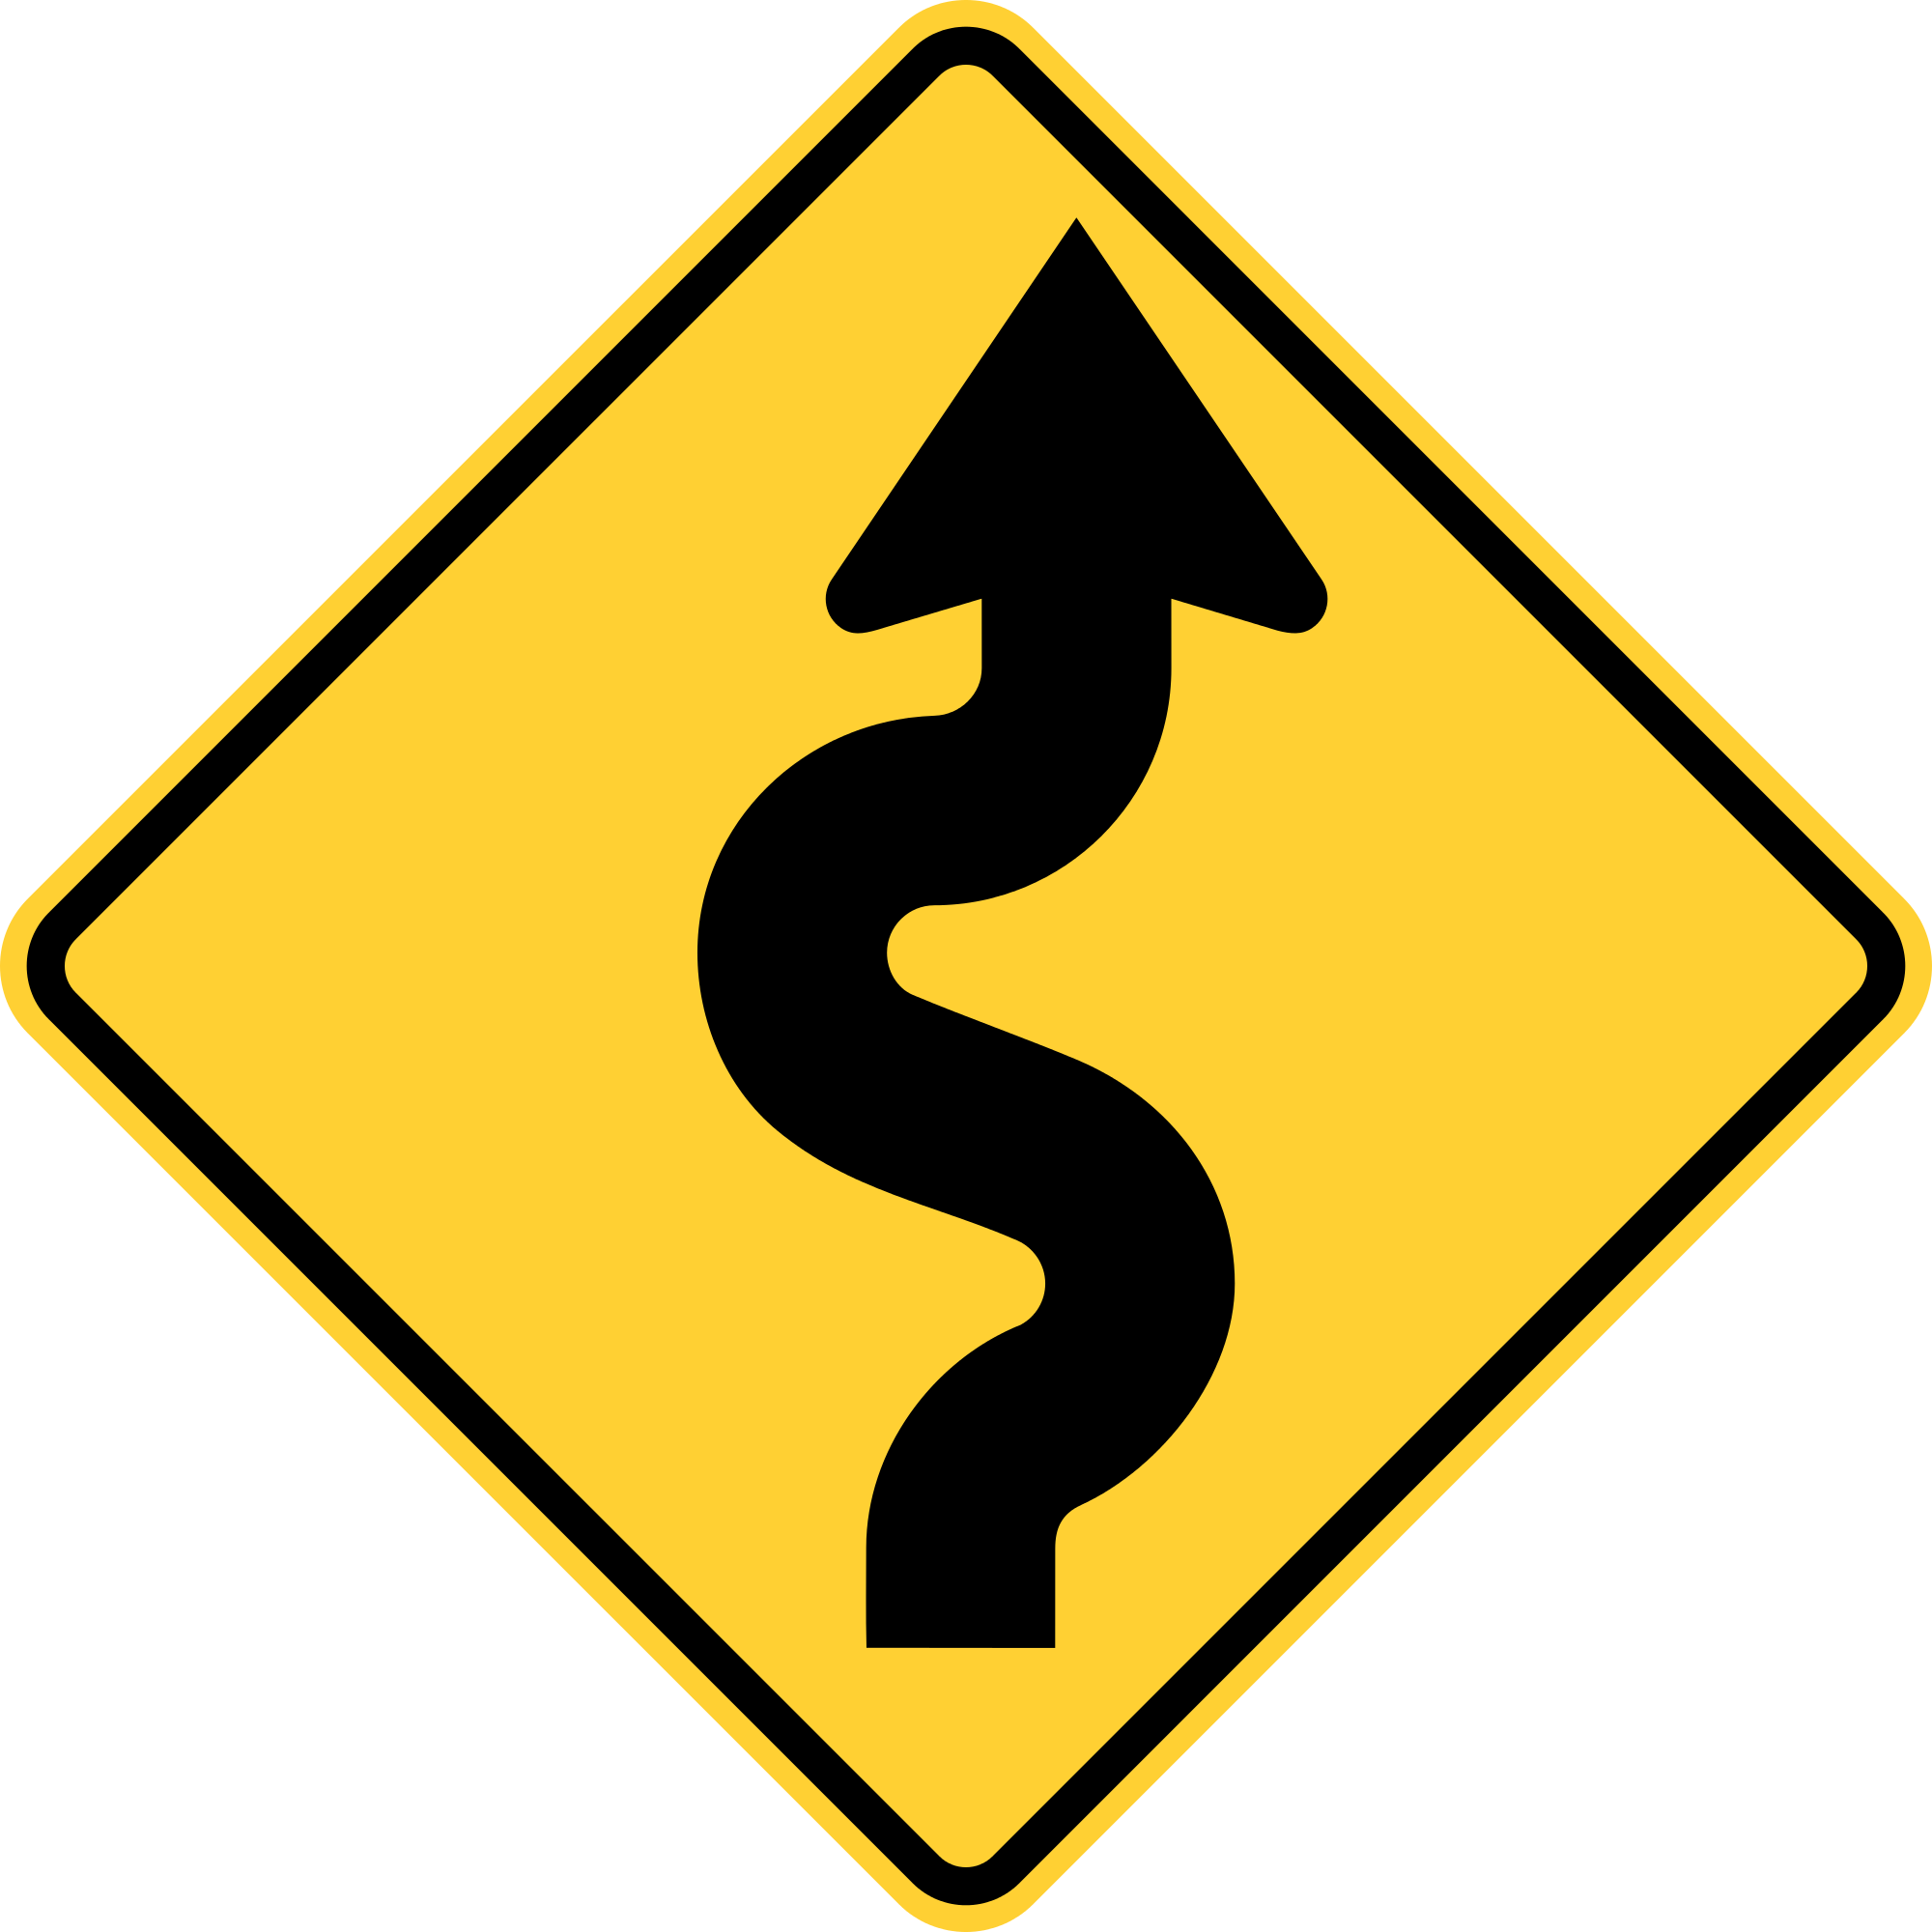 W1-5R Winding Road Warning Sign